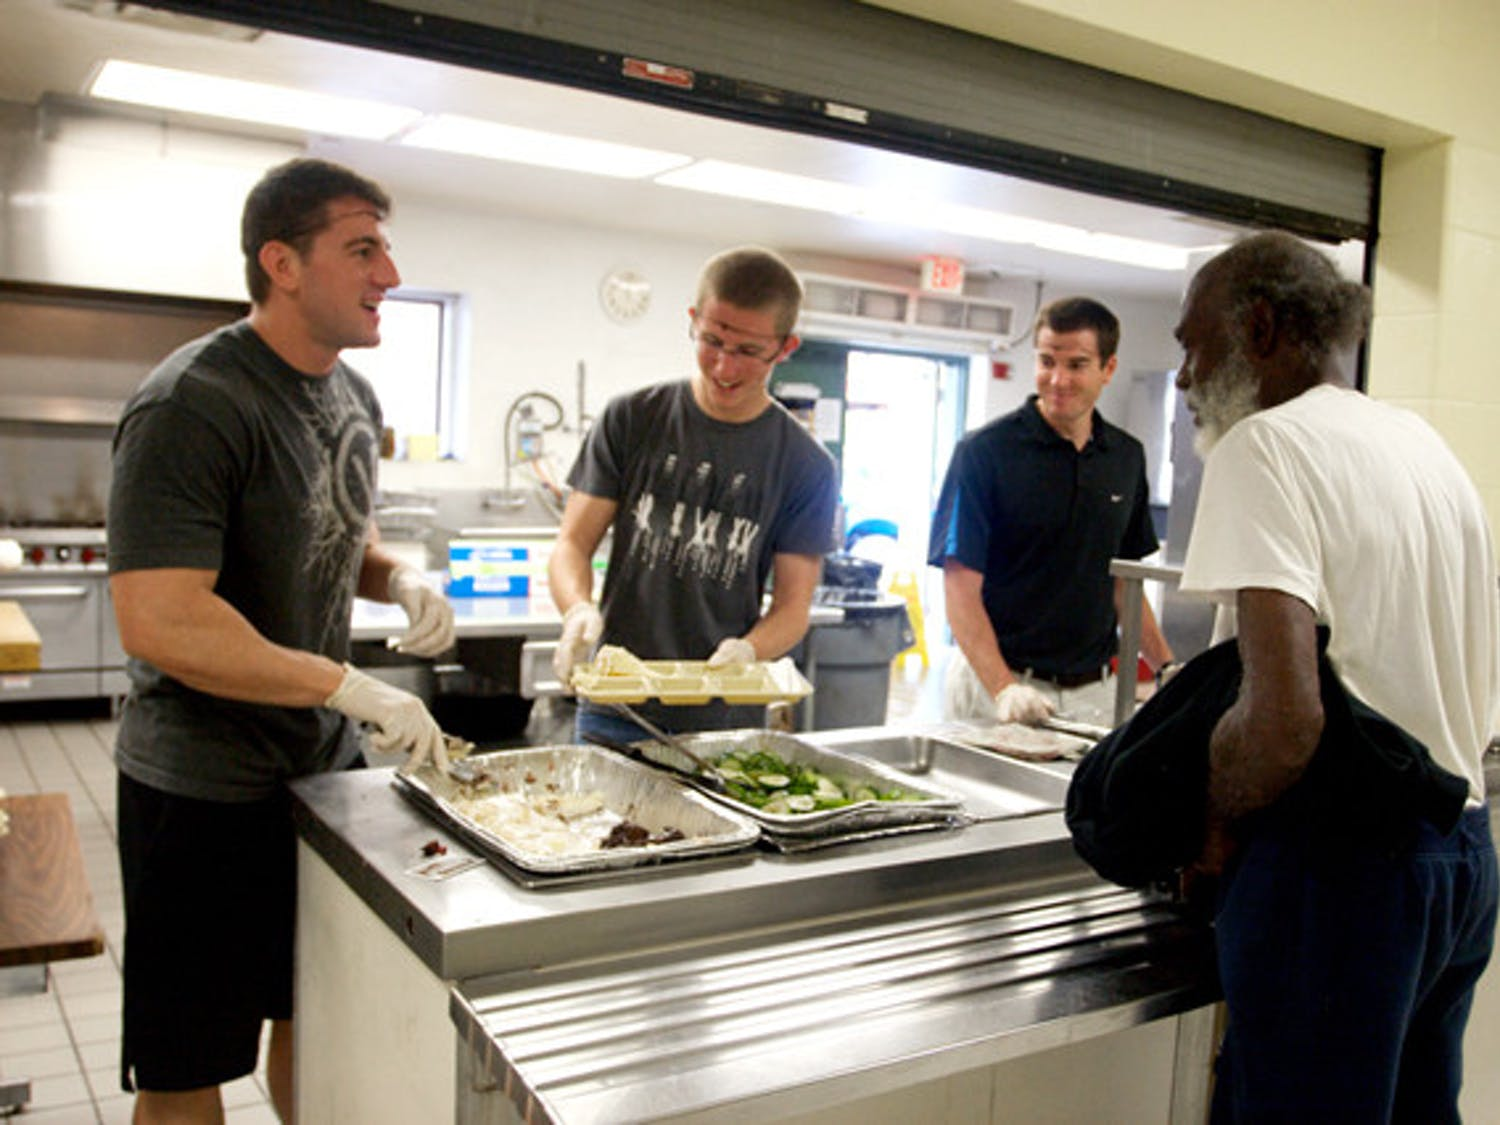 Volunteering members of RecSports serve food to a man at St. Francis House on Thursday. Currently, St. Francis House is restricted to a 130-meal limit per day.